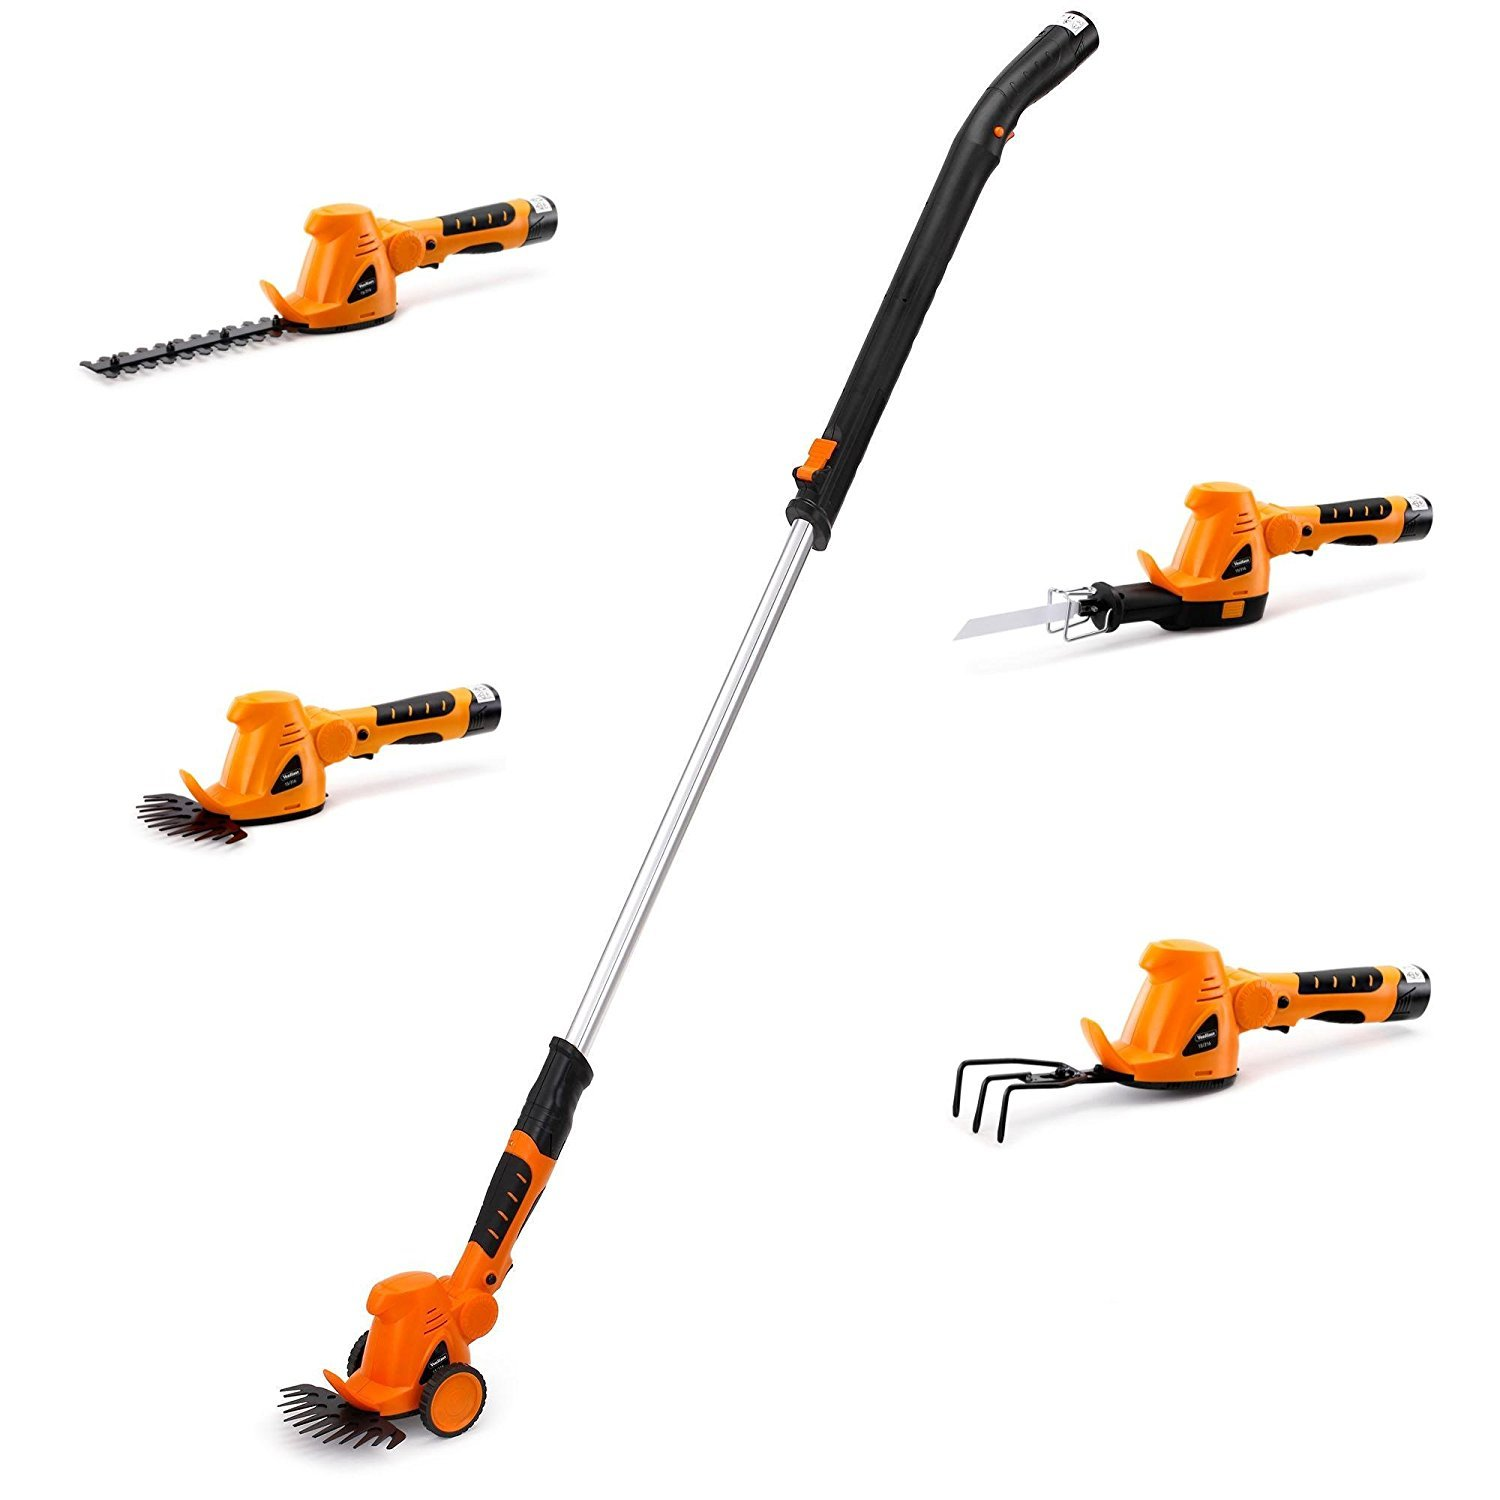 VonHaus 4 in 1 Cordless 10.8V Compact Handheld Grass Shears, Hedge Trimmer, Reciprocating Saw and Cultivator - with Wheeled Extension Handle